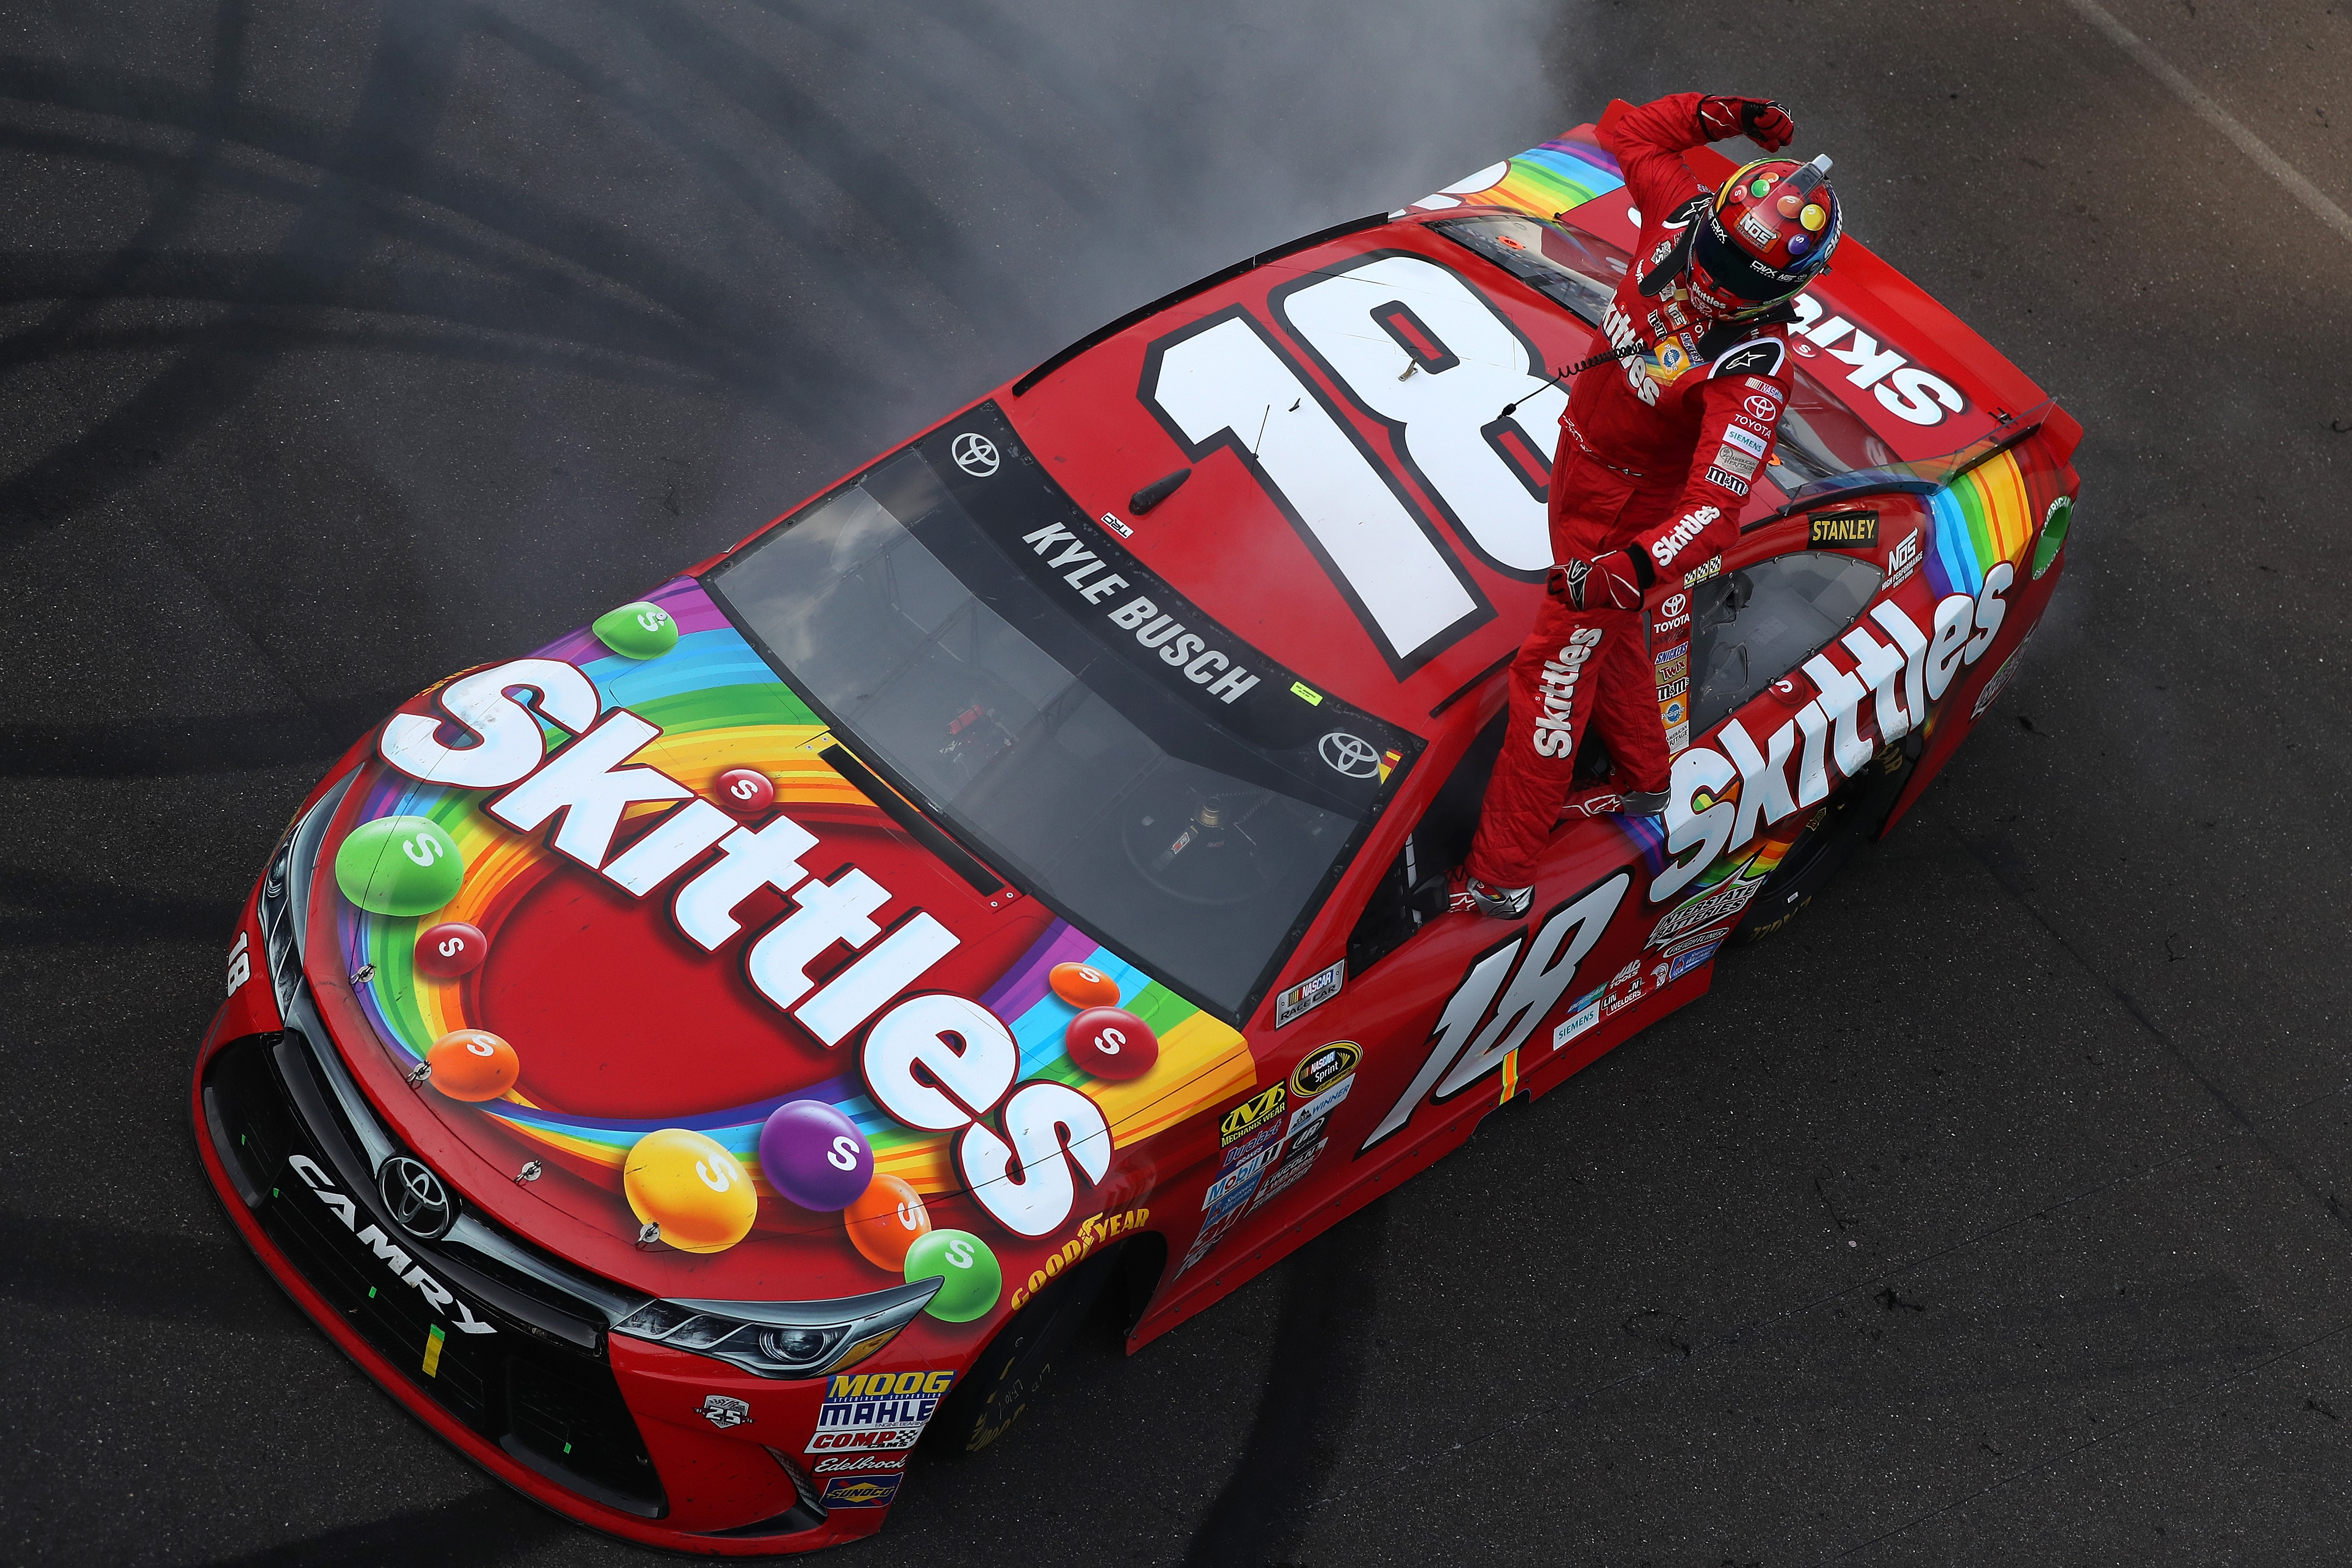 INDIANAPOLIS, IN - JULY 24: Kyle Busch, driver of the #18 Skittles Toyota, celebrates winning the NASCAR Sprint Cup Series Crown Royal Presents the Combat Wounded Coalition 400 at Indianapolis Motor Speedway on July 24, 2016 in Indianapolis, Indiana. (Photo by Sean Gardner/NASCAR via Getty Images)